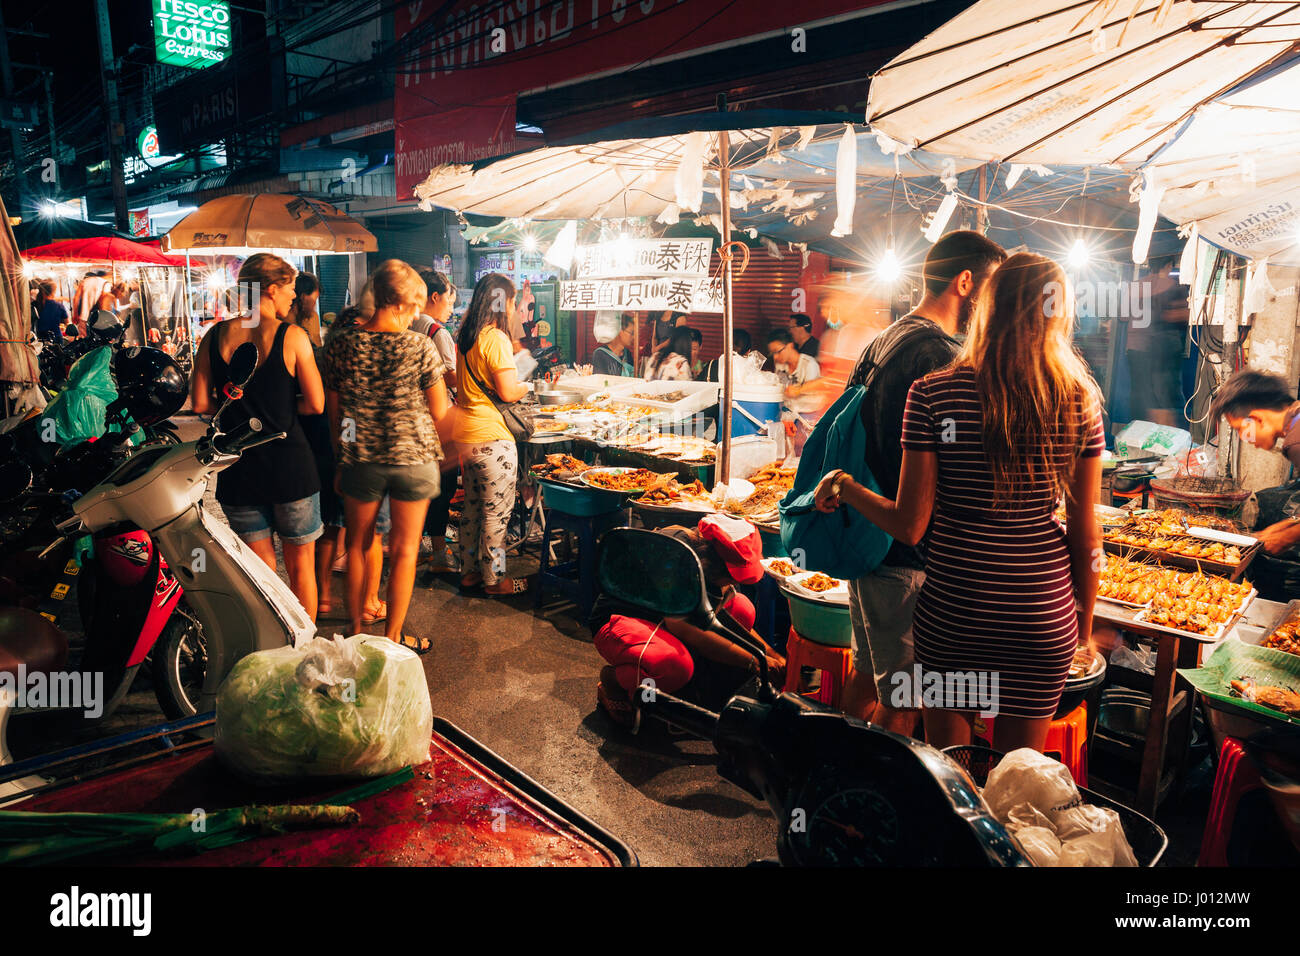 Chiang Mai, Thailand - August 27, 2016:  Tourists choose food at the Saturday Night Market on August 27, 2016 in - Stock Image